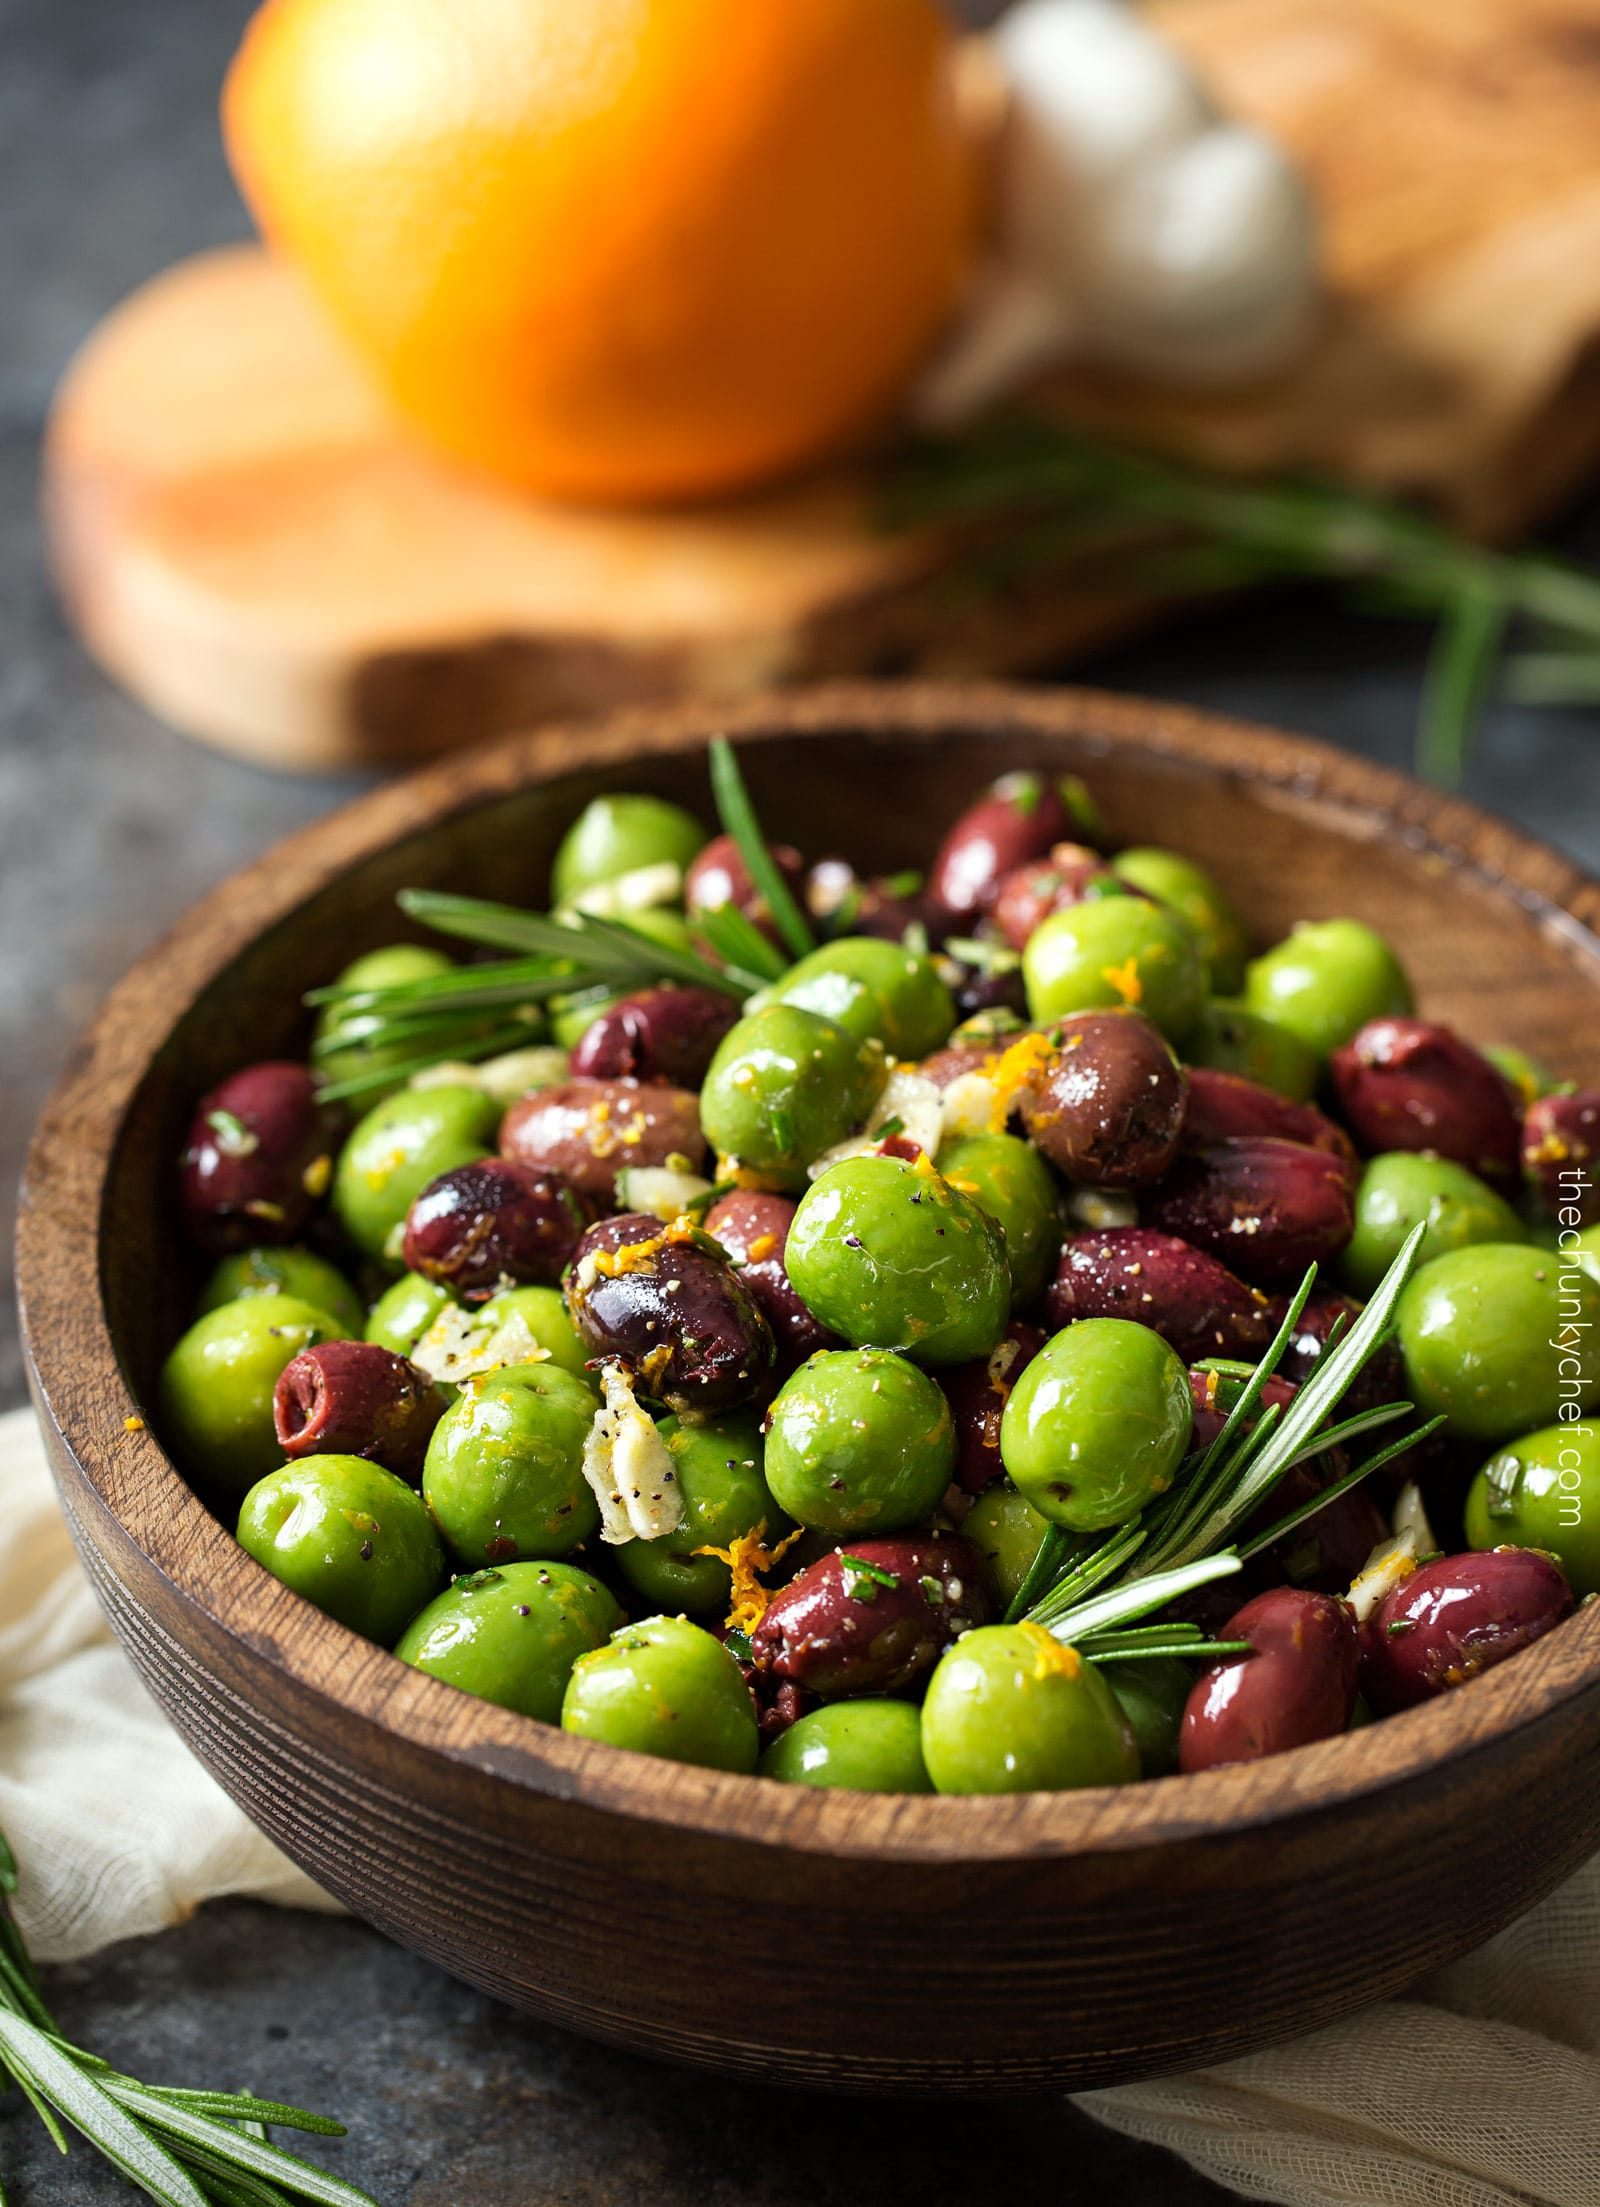 Easy Citrus Herb Marinated Olives | Kalamata and Castelvetrano olives are marinated in a mouthwatering marinade of citrus, herbs and garlic. Perfect for a snack, party, or cheese platter! | http://thechunkychef.com